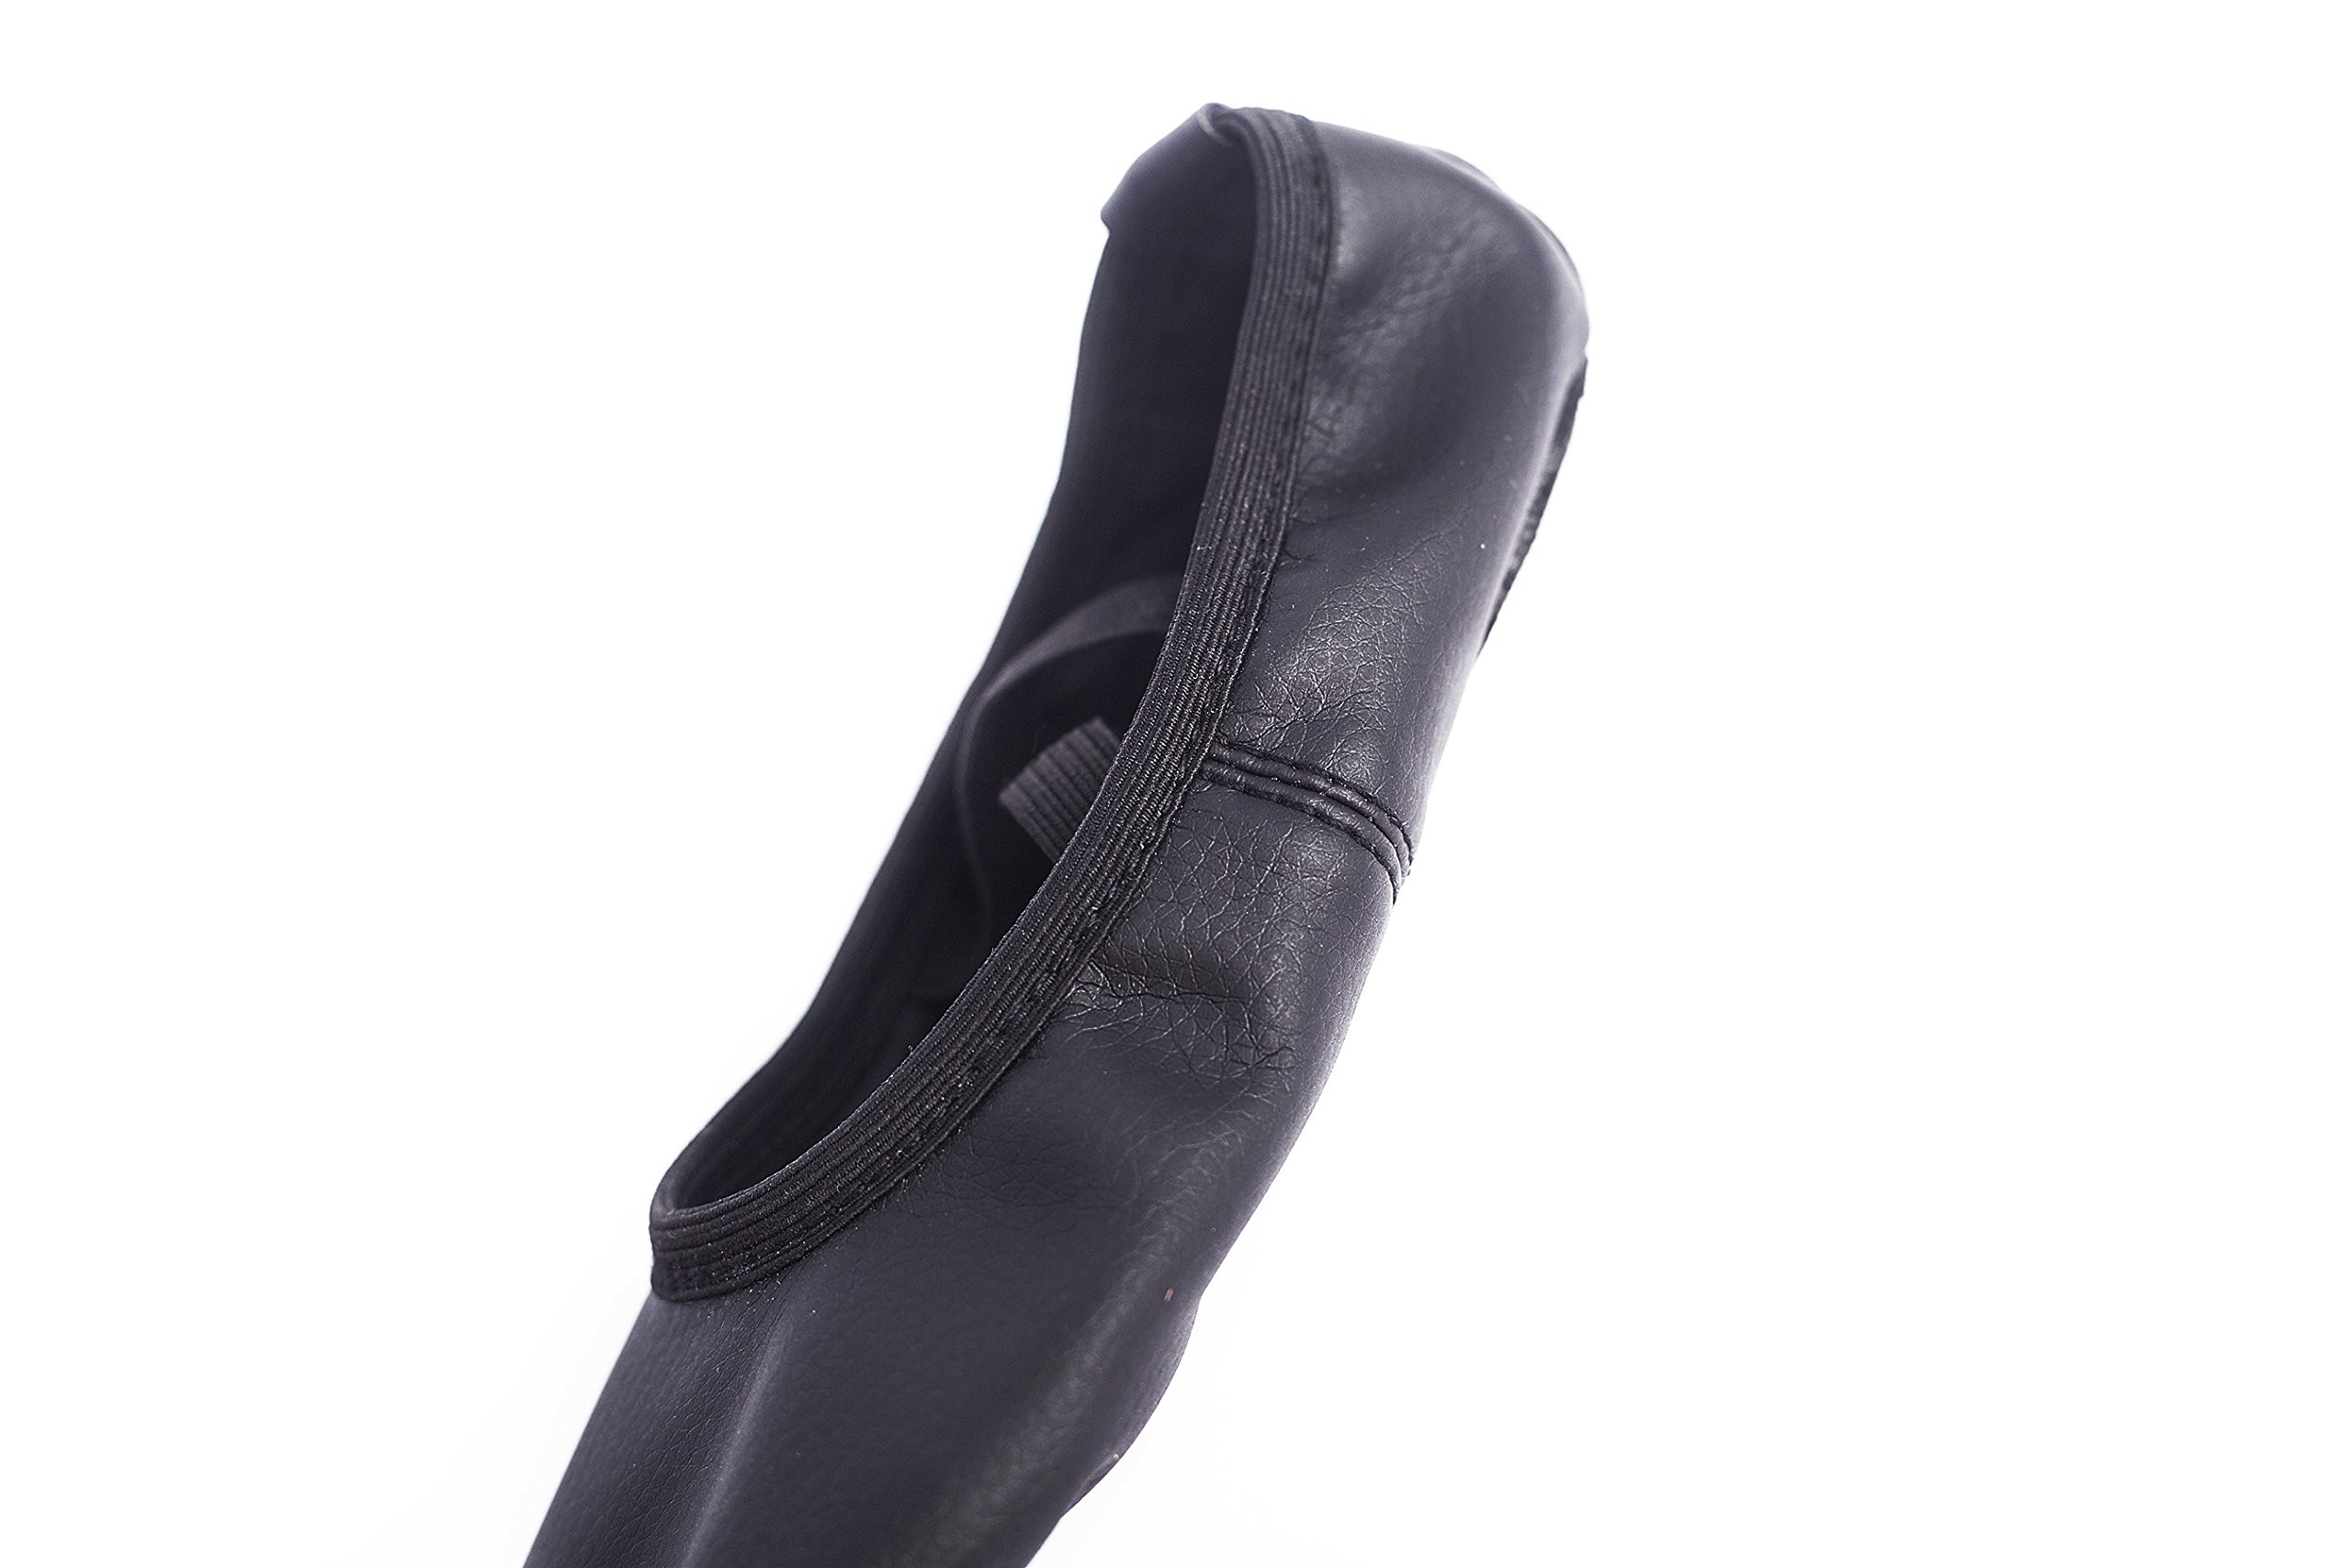 FERMAID Leather Ballet Dance Shoes Girls Pointe Shoes Slippers Flats Yoga Shoe(Toddler/Little Kid/Big Kid/Women) (215, Black) by FERMAID (Image #5)